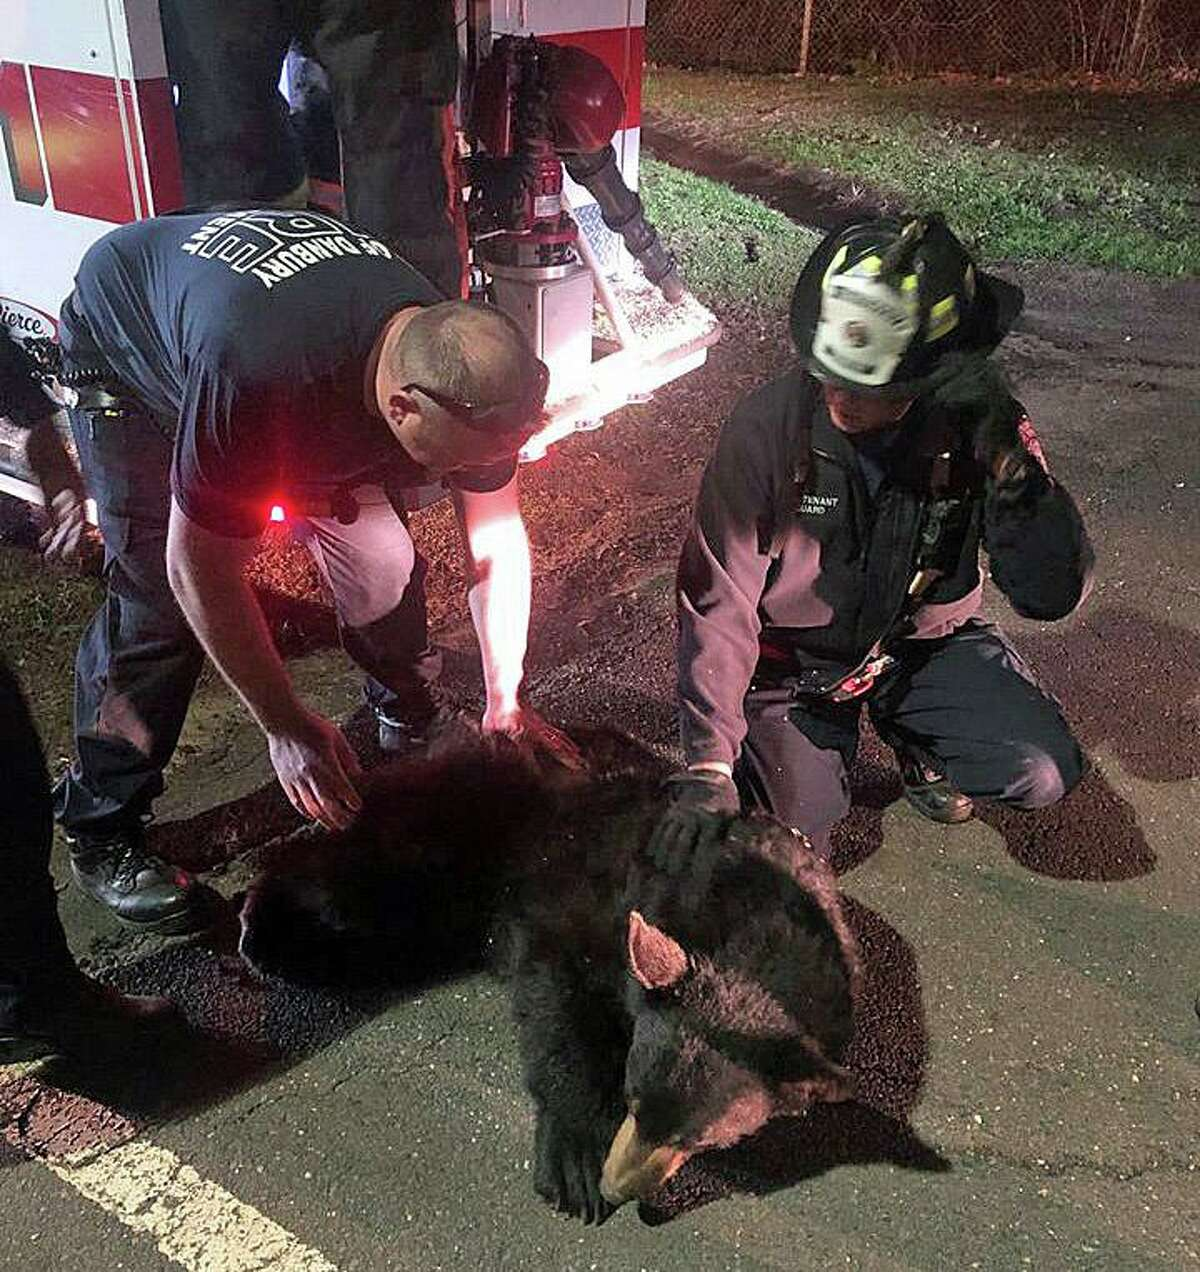 """Mayor Mark Boughton posted a photo of a bear rescue in Danbury on Monday, April 20, 2020. """"What a save tonight by the team at the Danbury Fire Department. Dan Berry was 'barely' hanging on, but, DEEP and our Firefighters managed to save him. Great job!"""" In another tweet, he said the the rescued happened downtown behind the New Street firehouse house"""